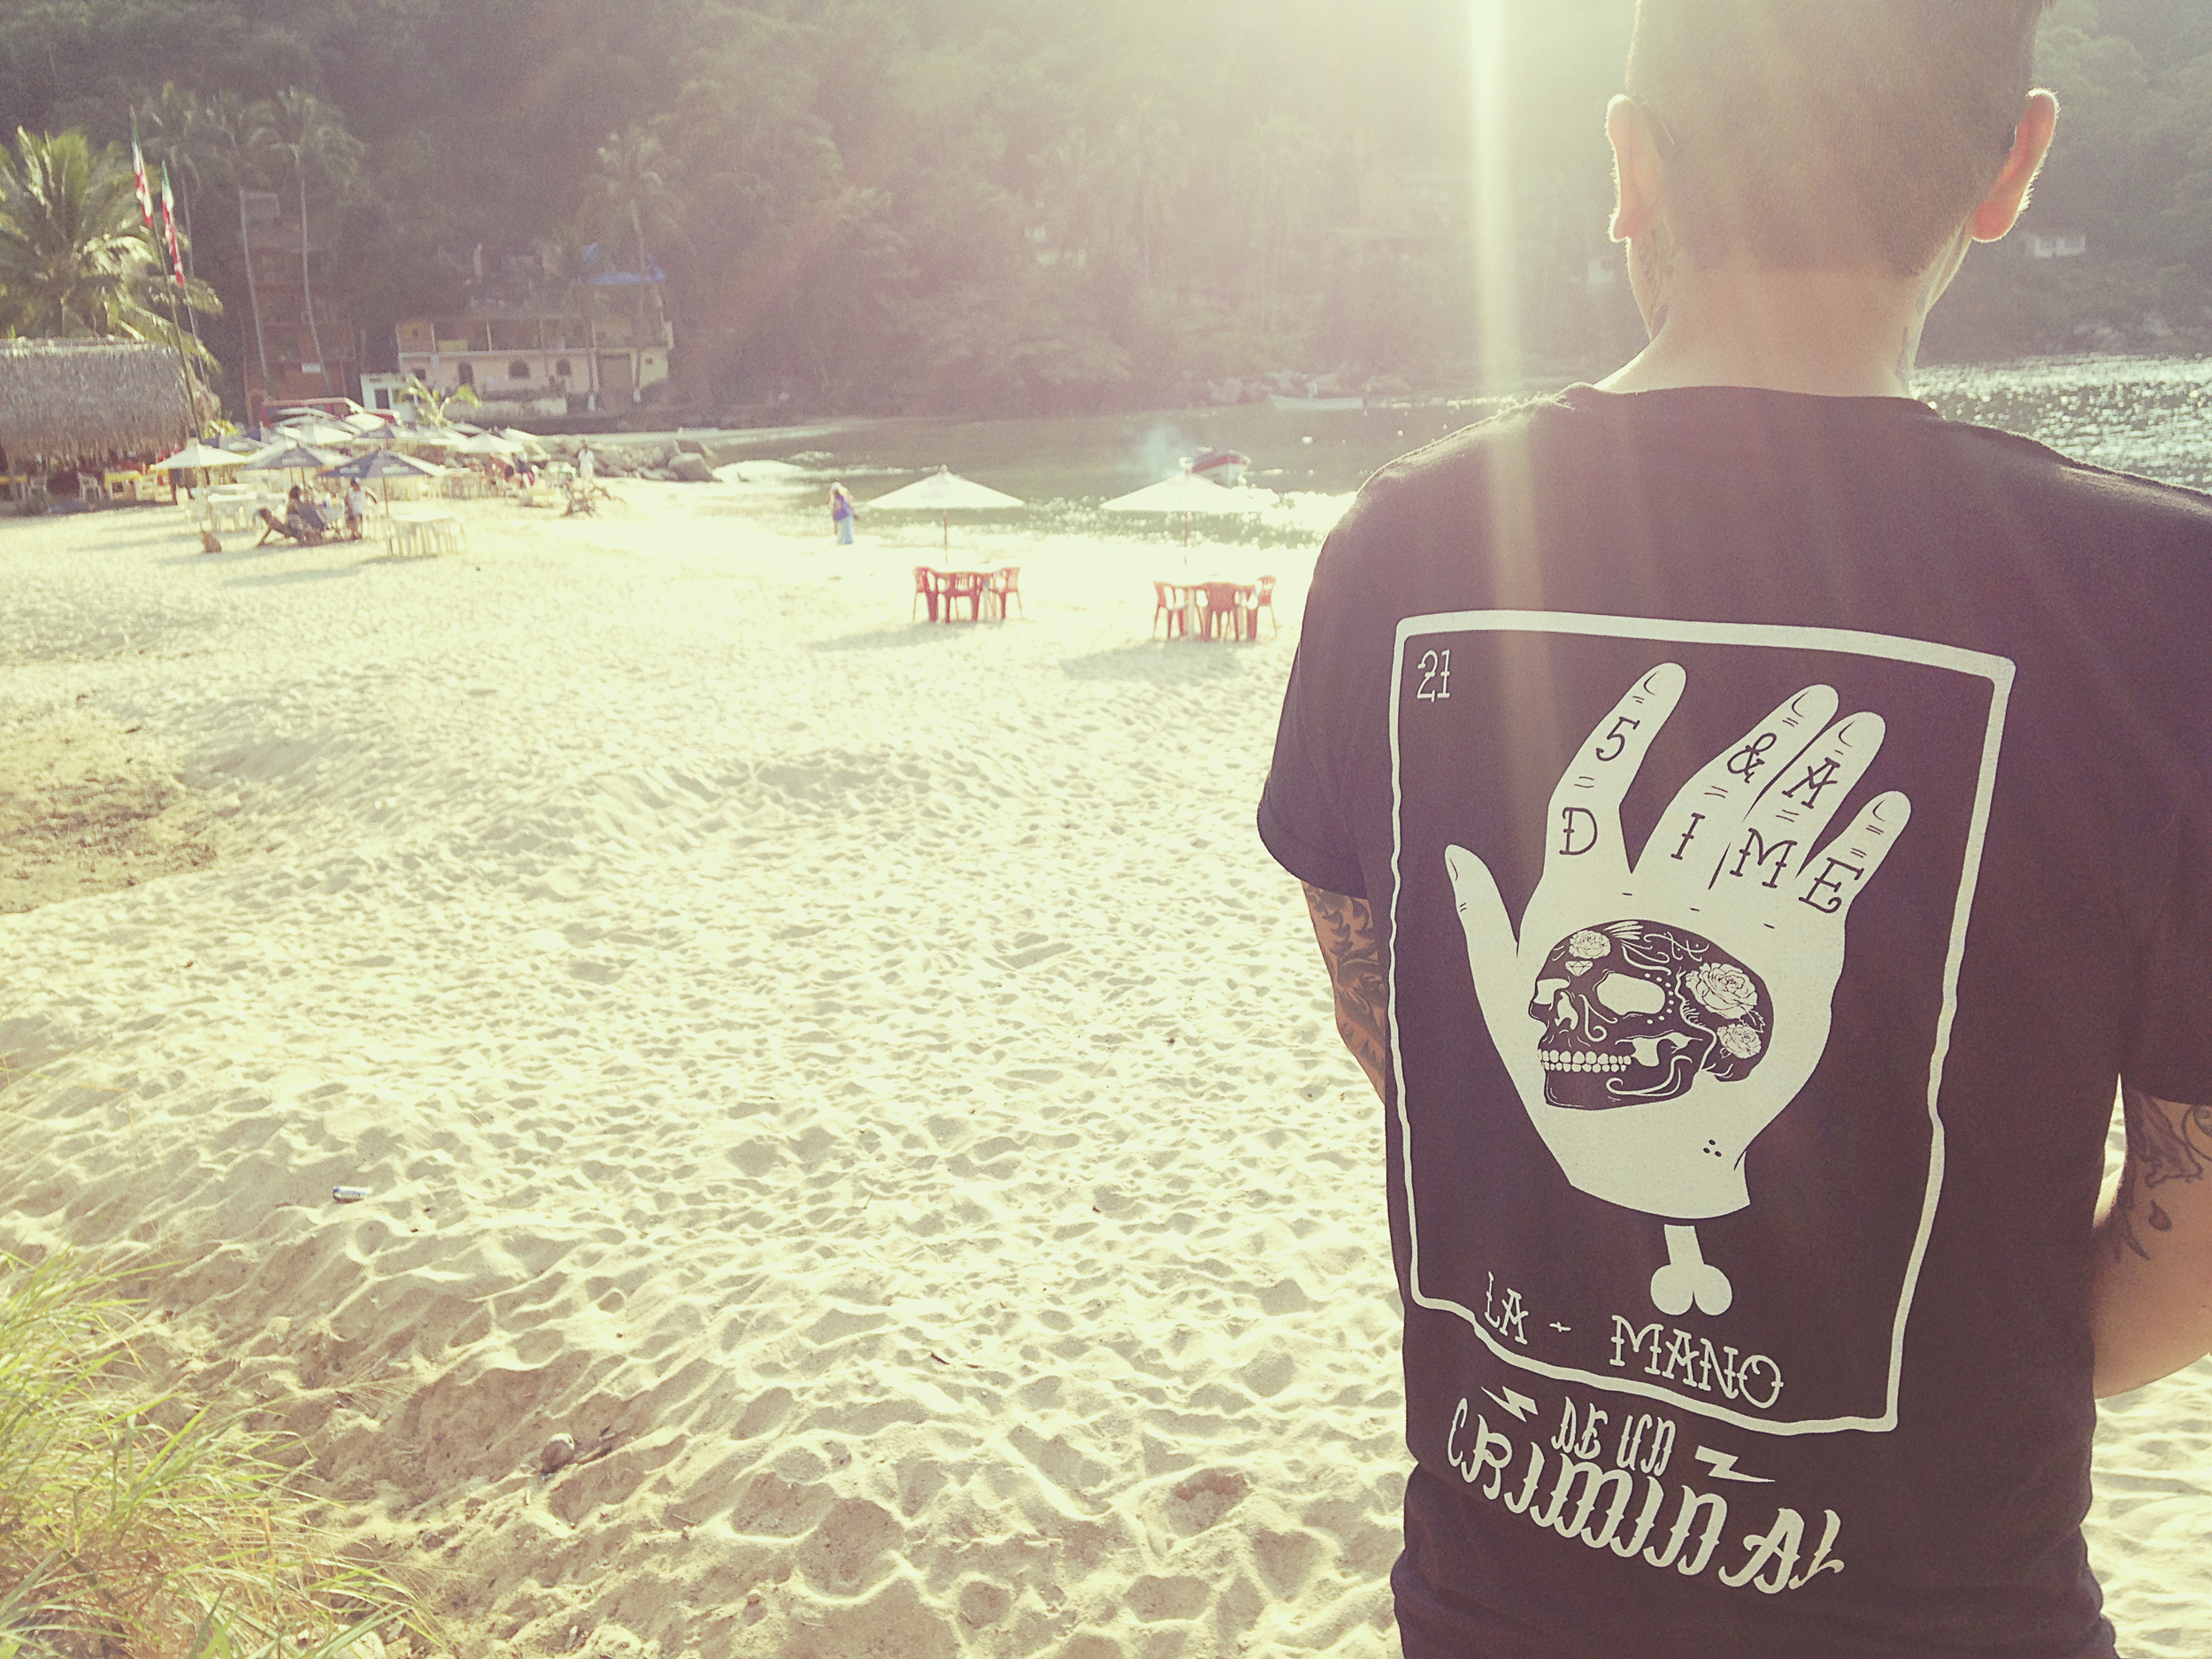 Repping the La Mano tee in Puerto Vallarta.